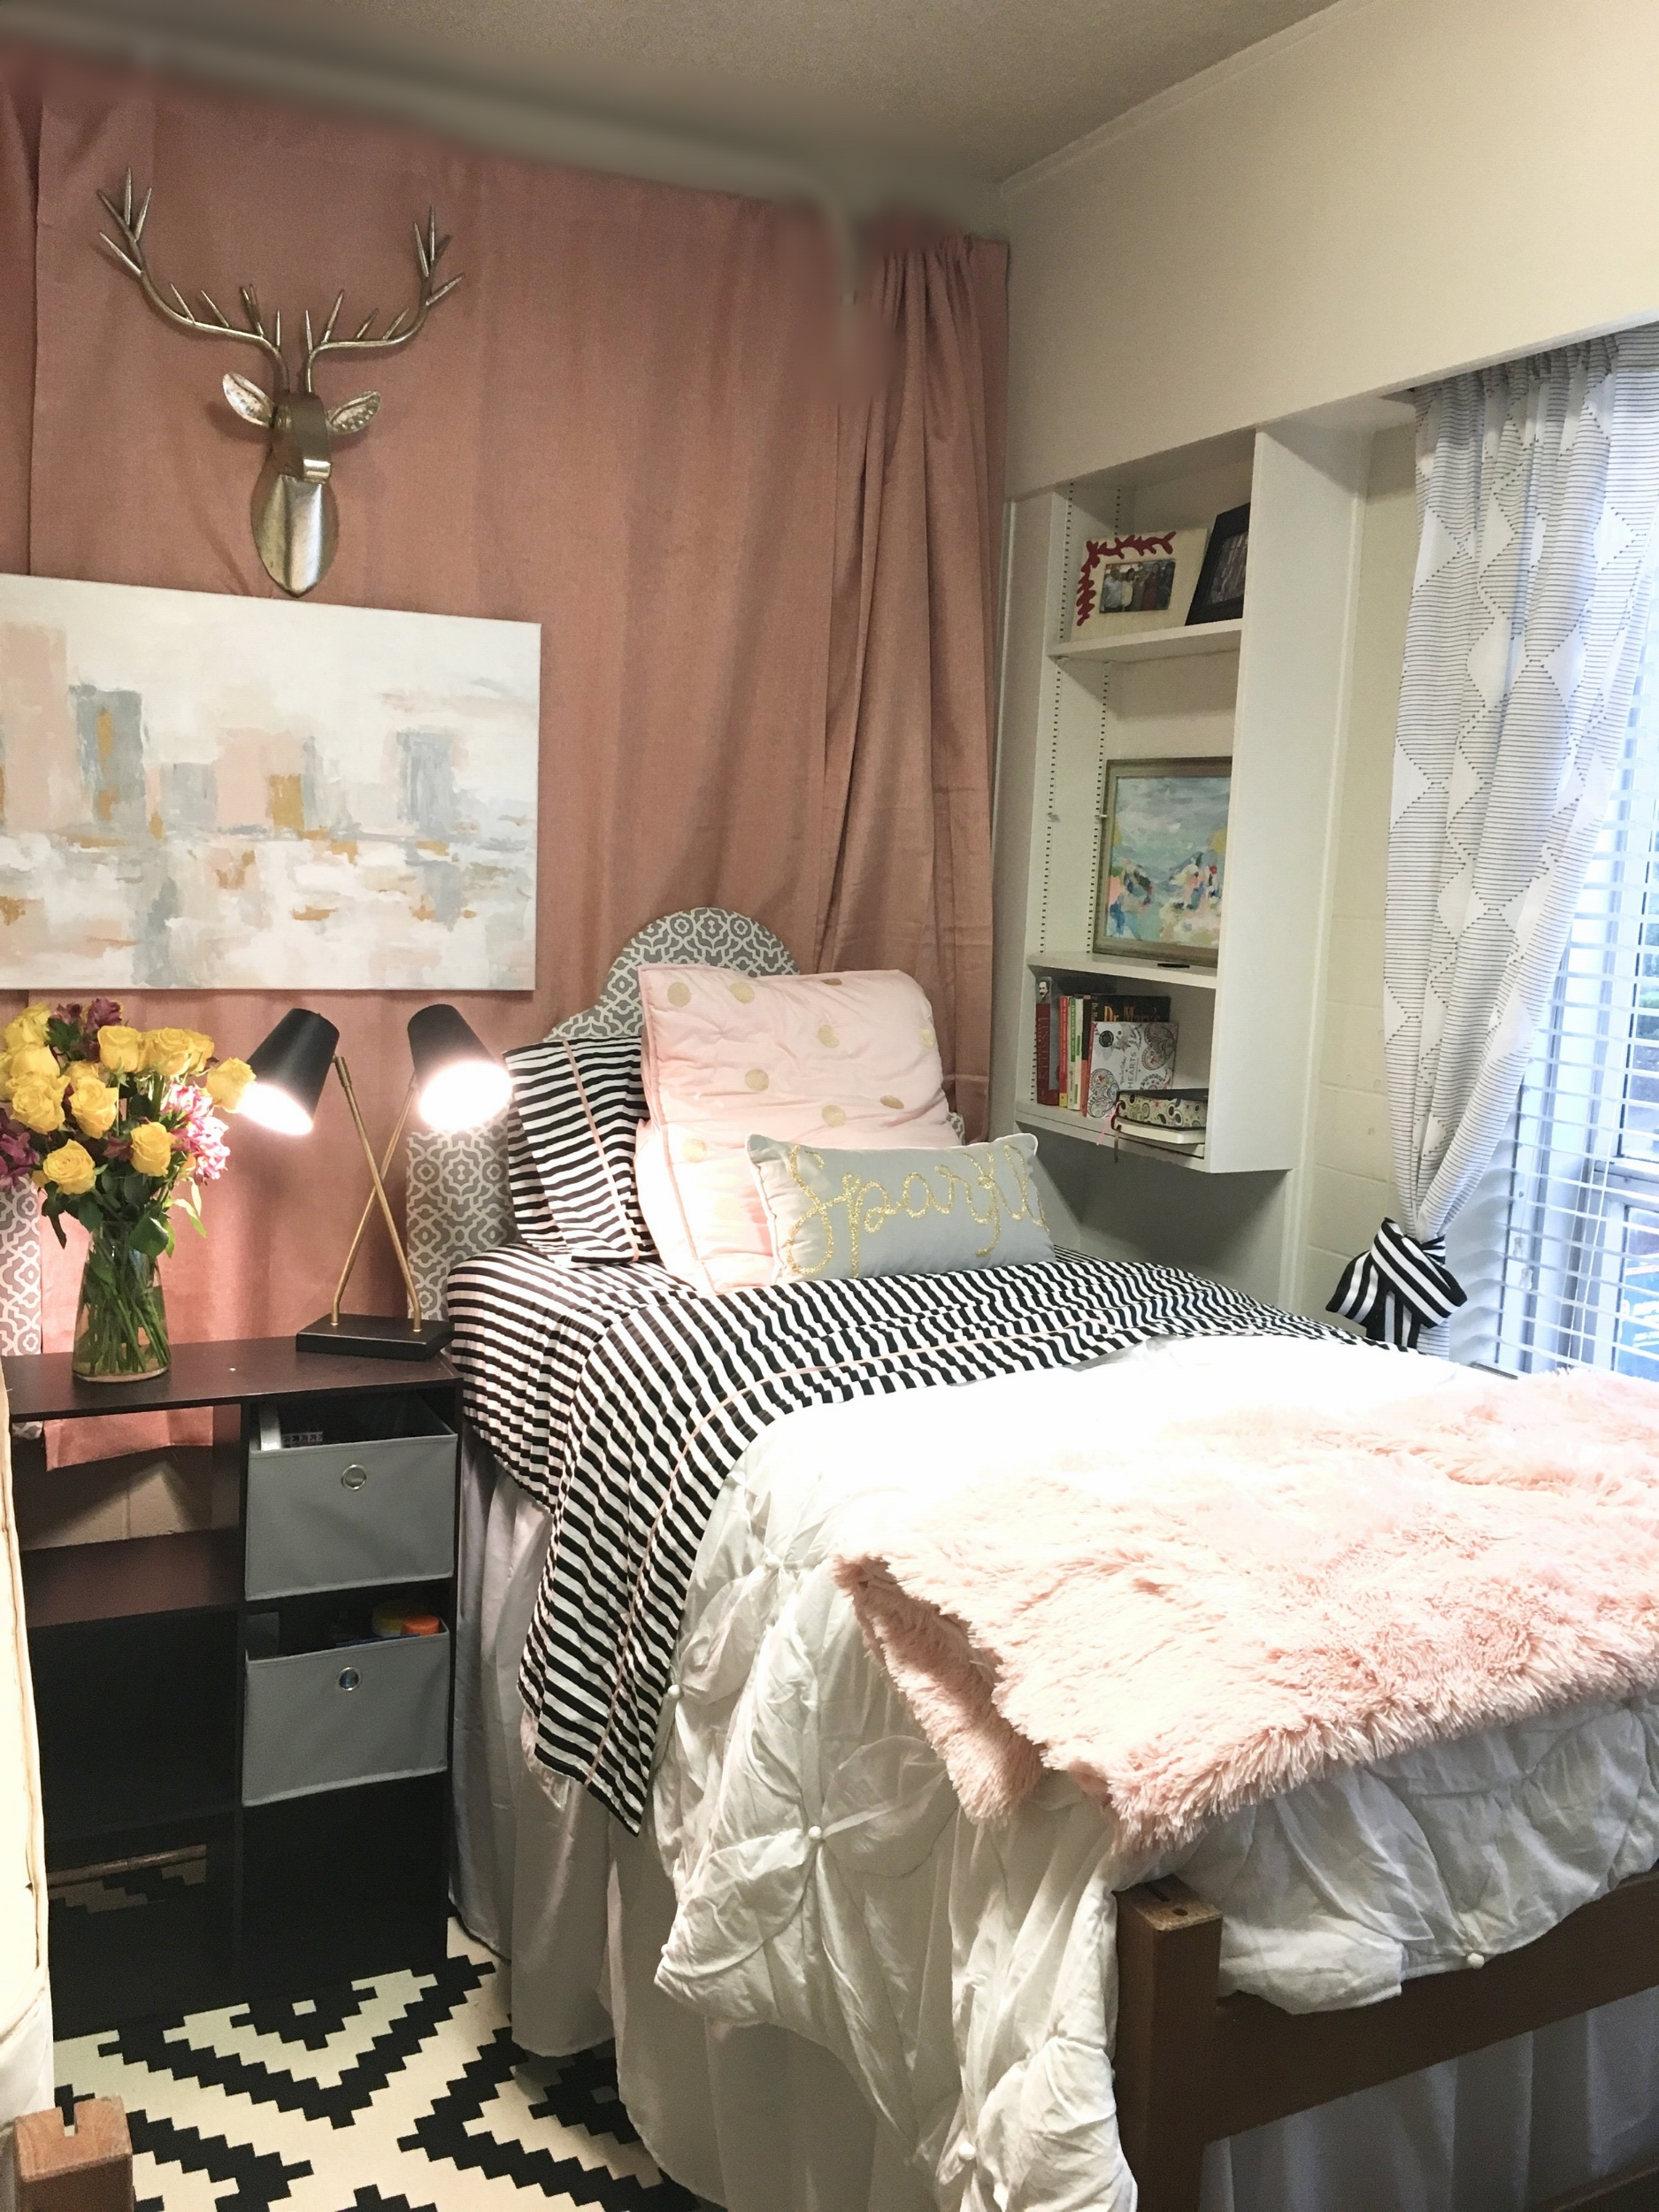 My Daughter's Dorm Room